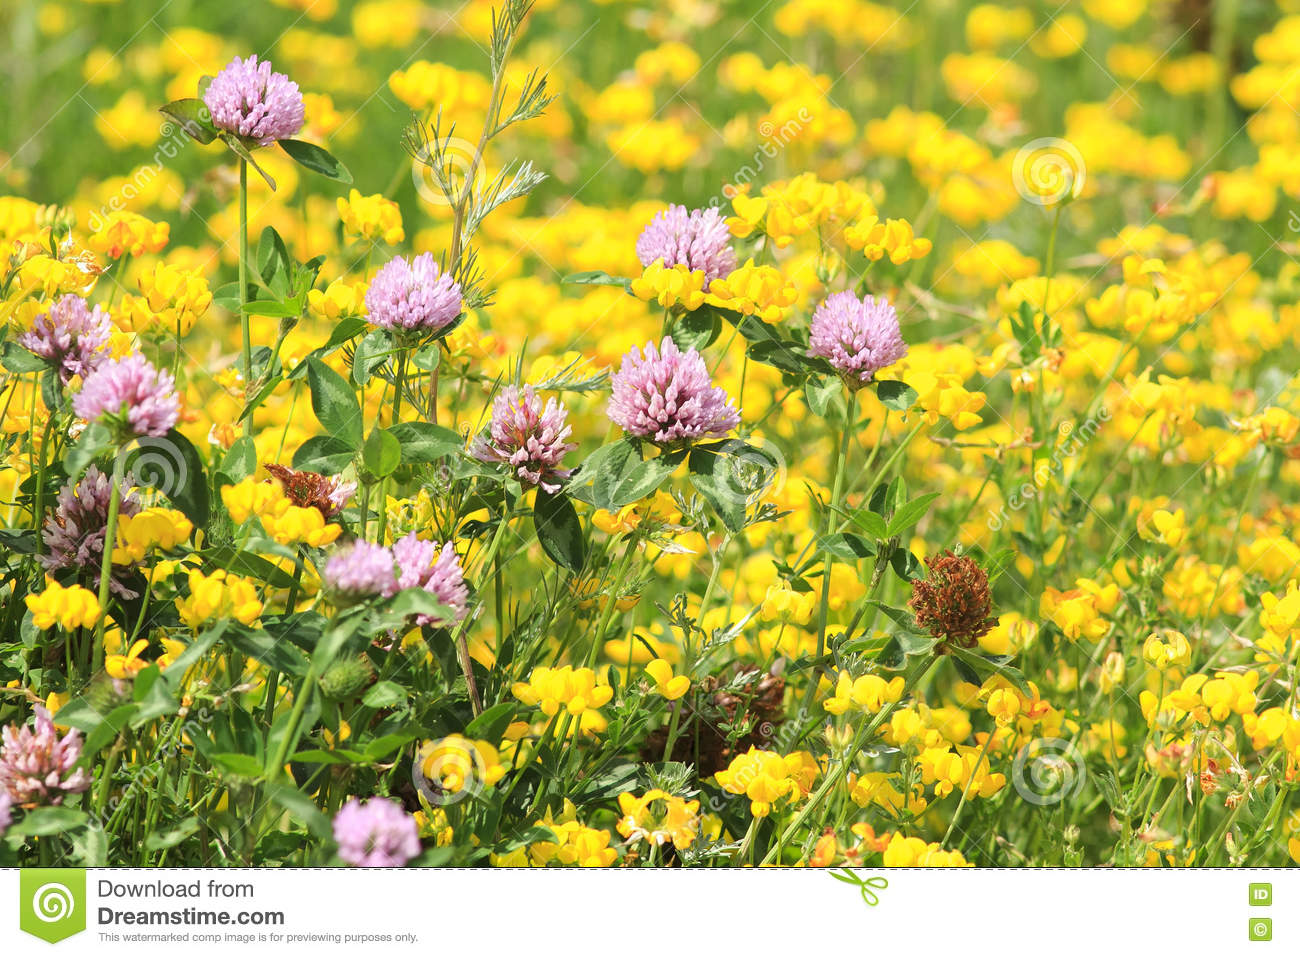 Meadow of pink clover and yellow flowers stock image image of download meadow of pink clover and yellow flowers stock image image of light natural mightylinksfo